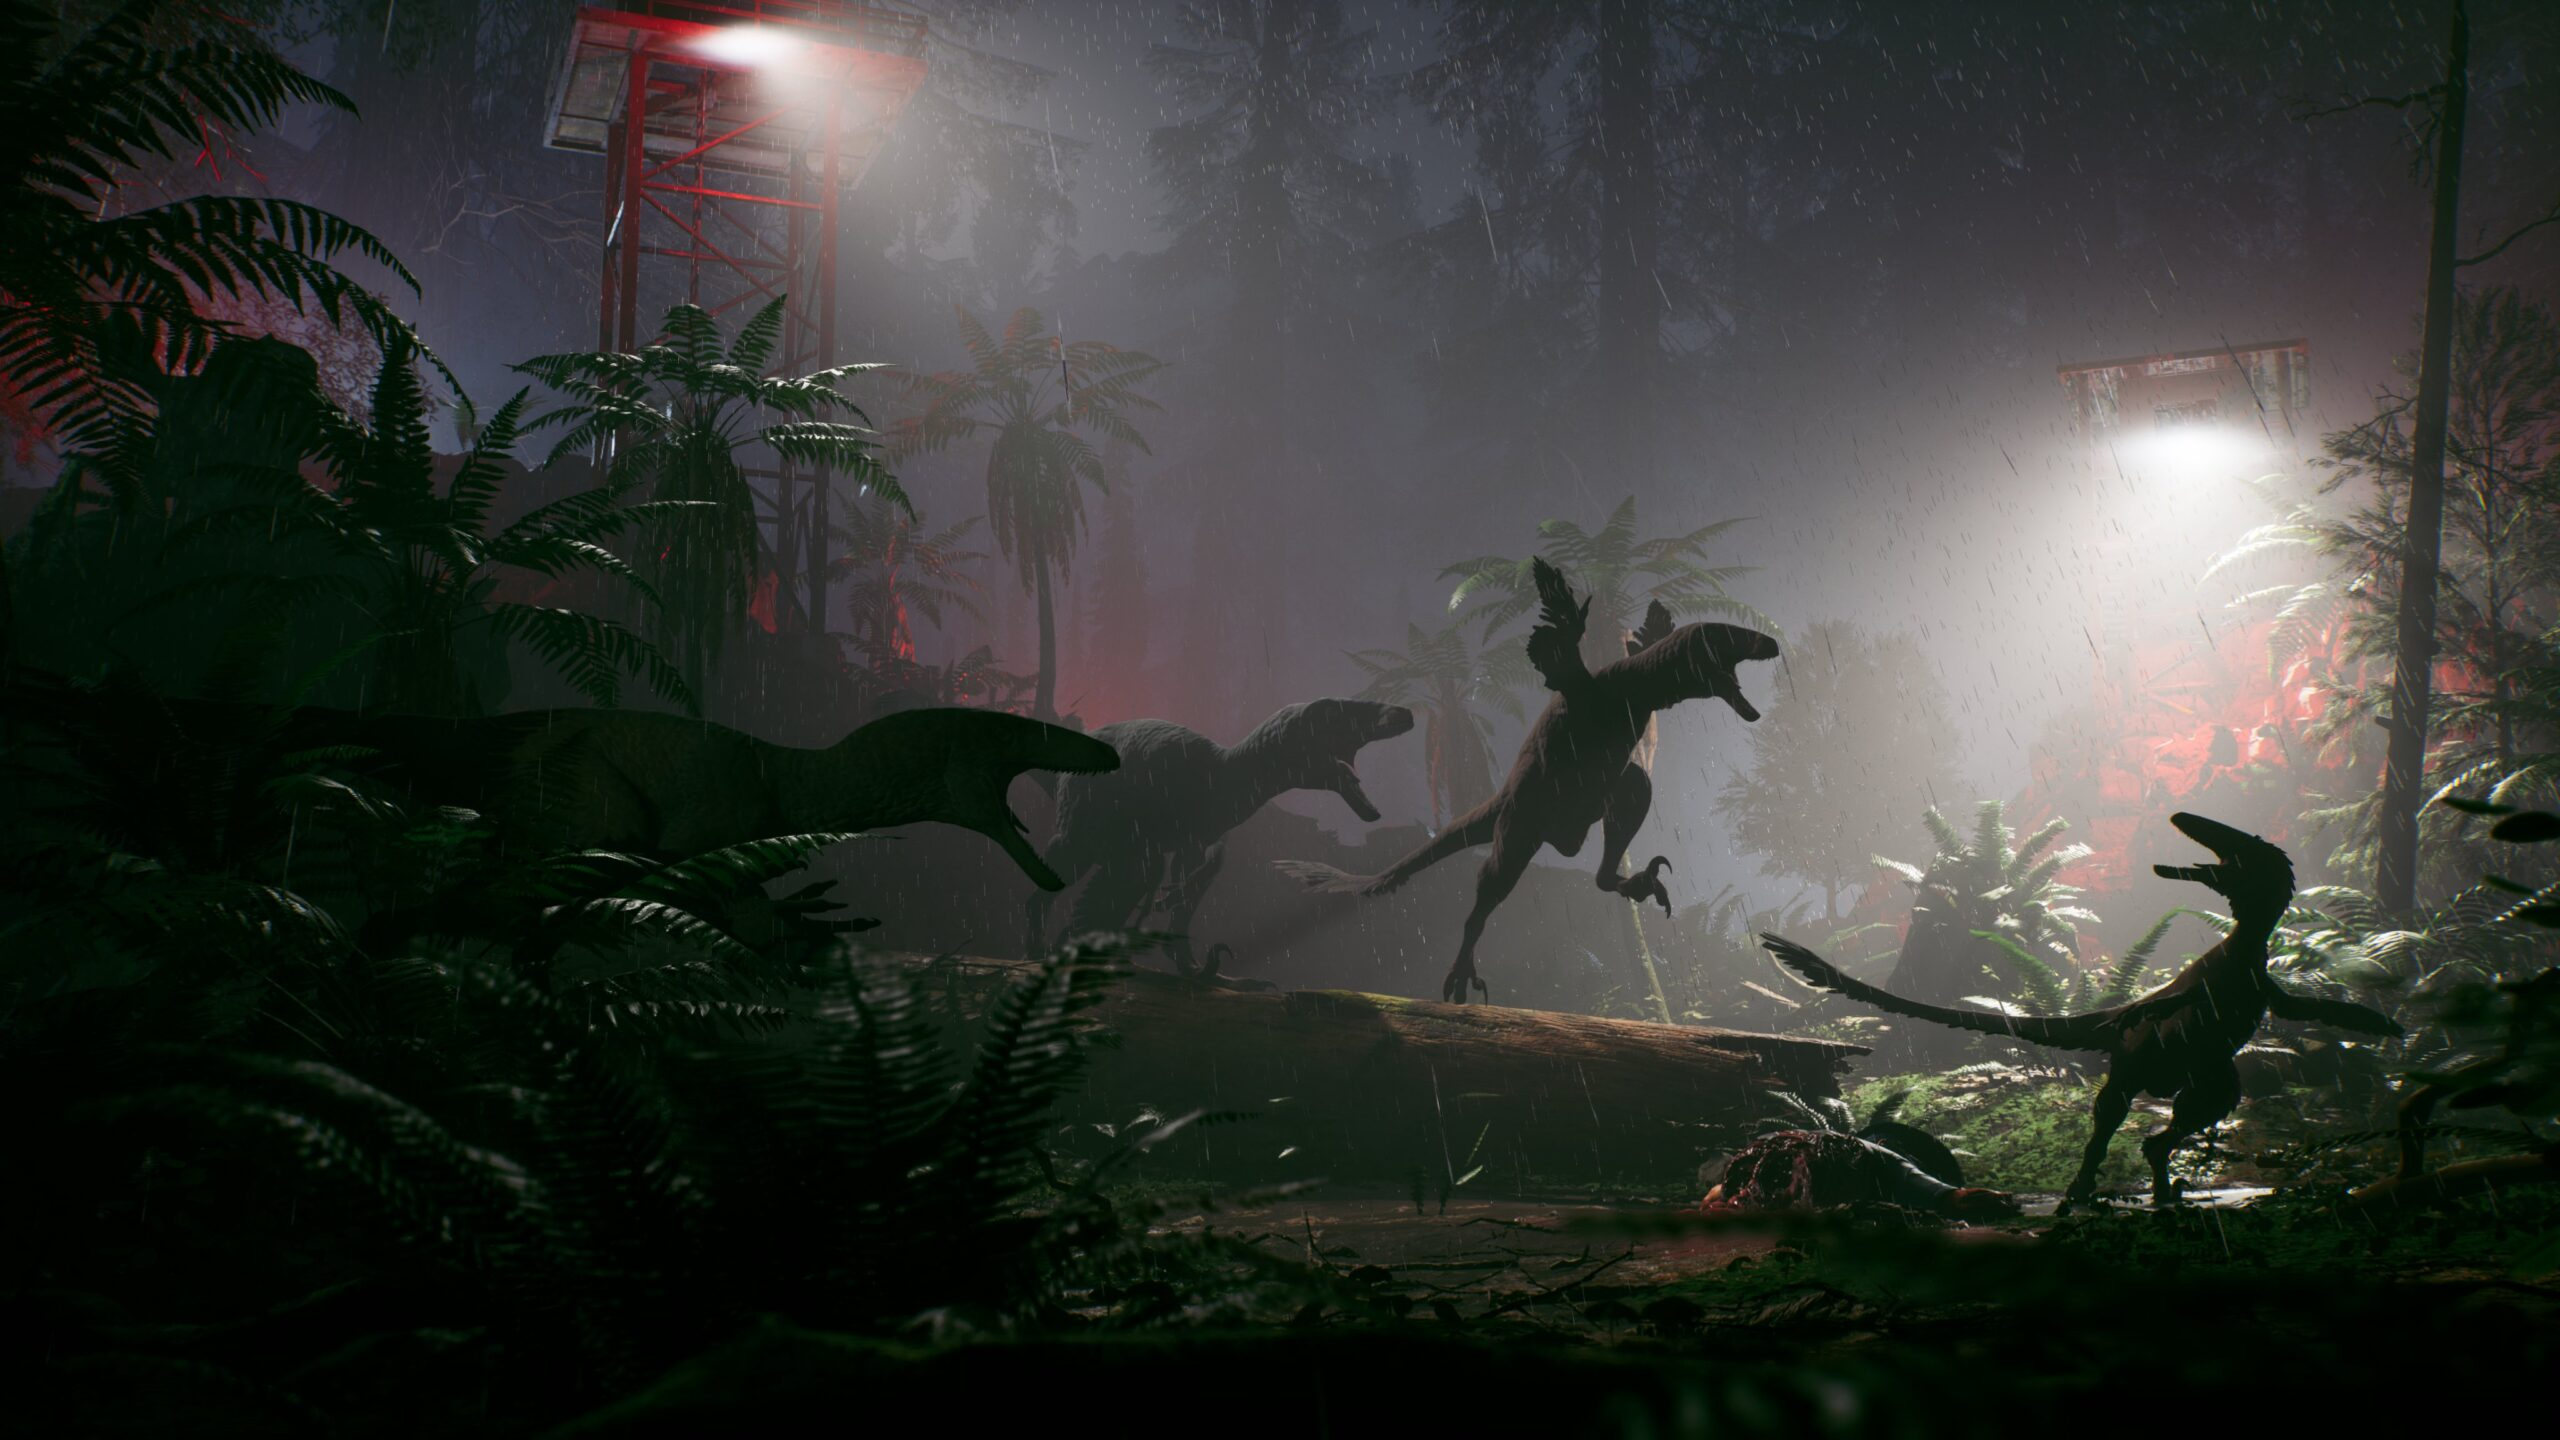 The Lost Wild screenshot, showing multiple dinasours attacking during a rainy night